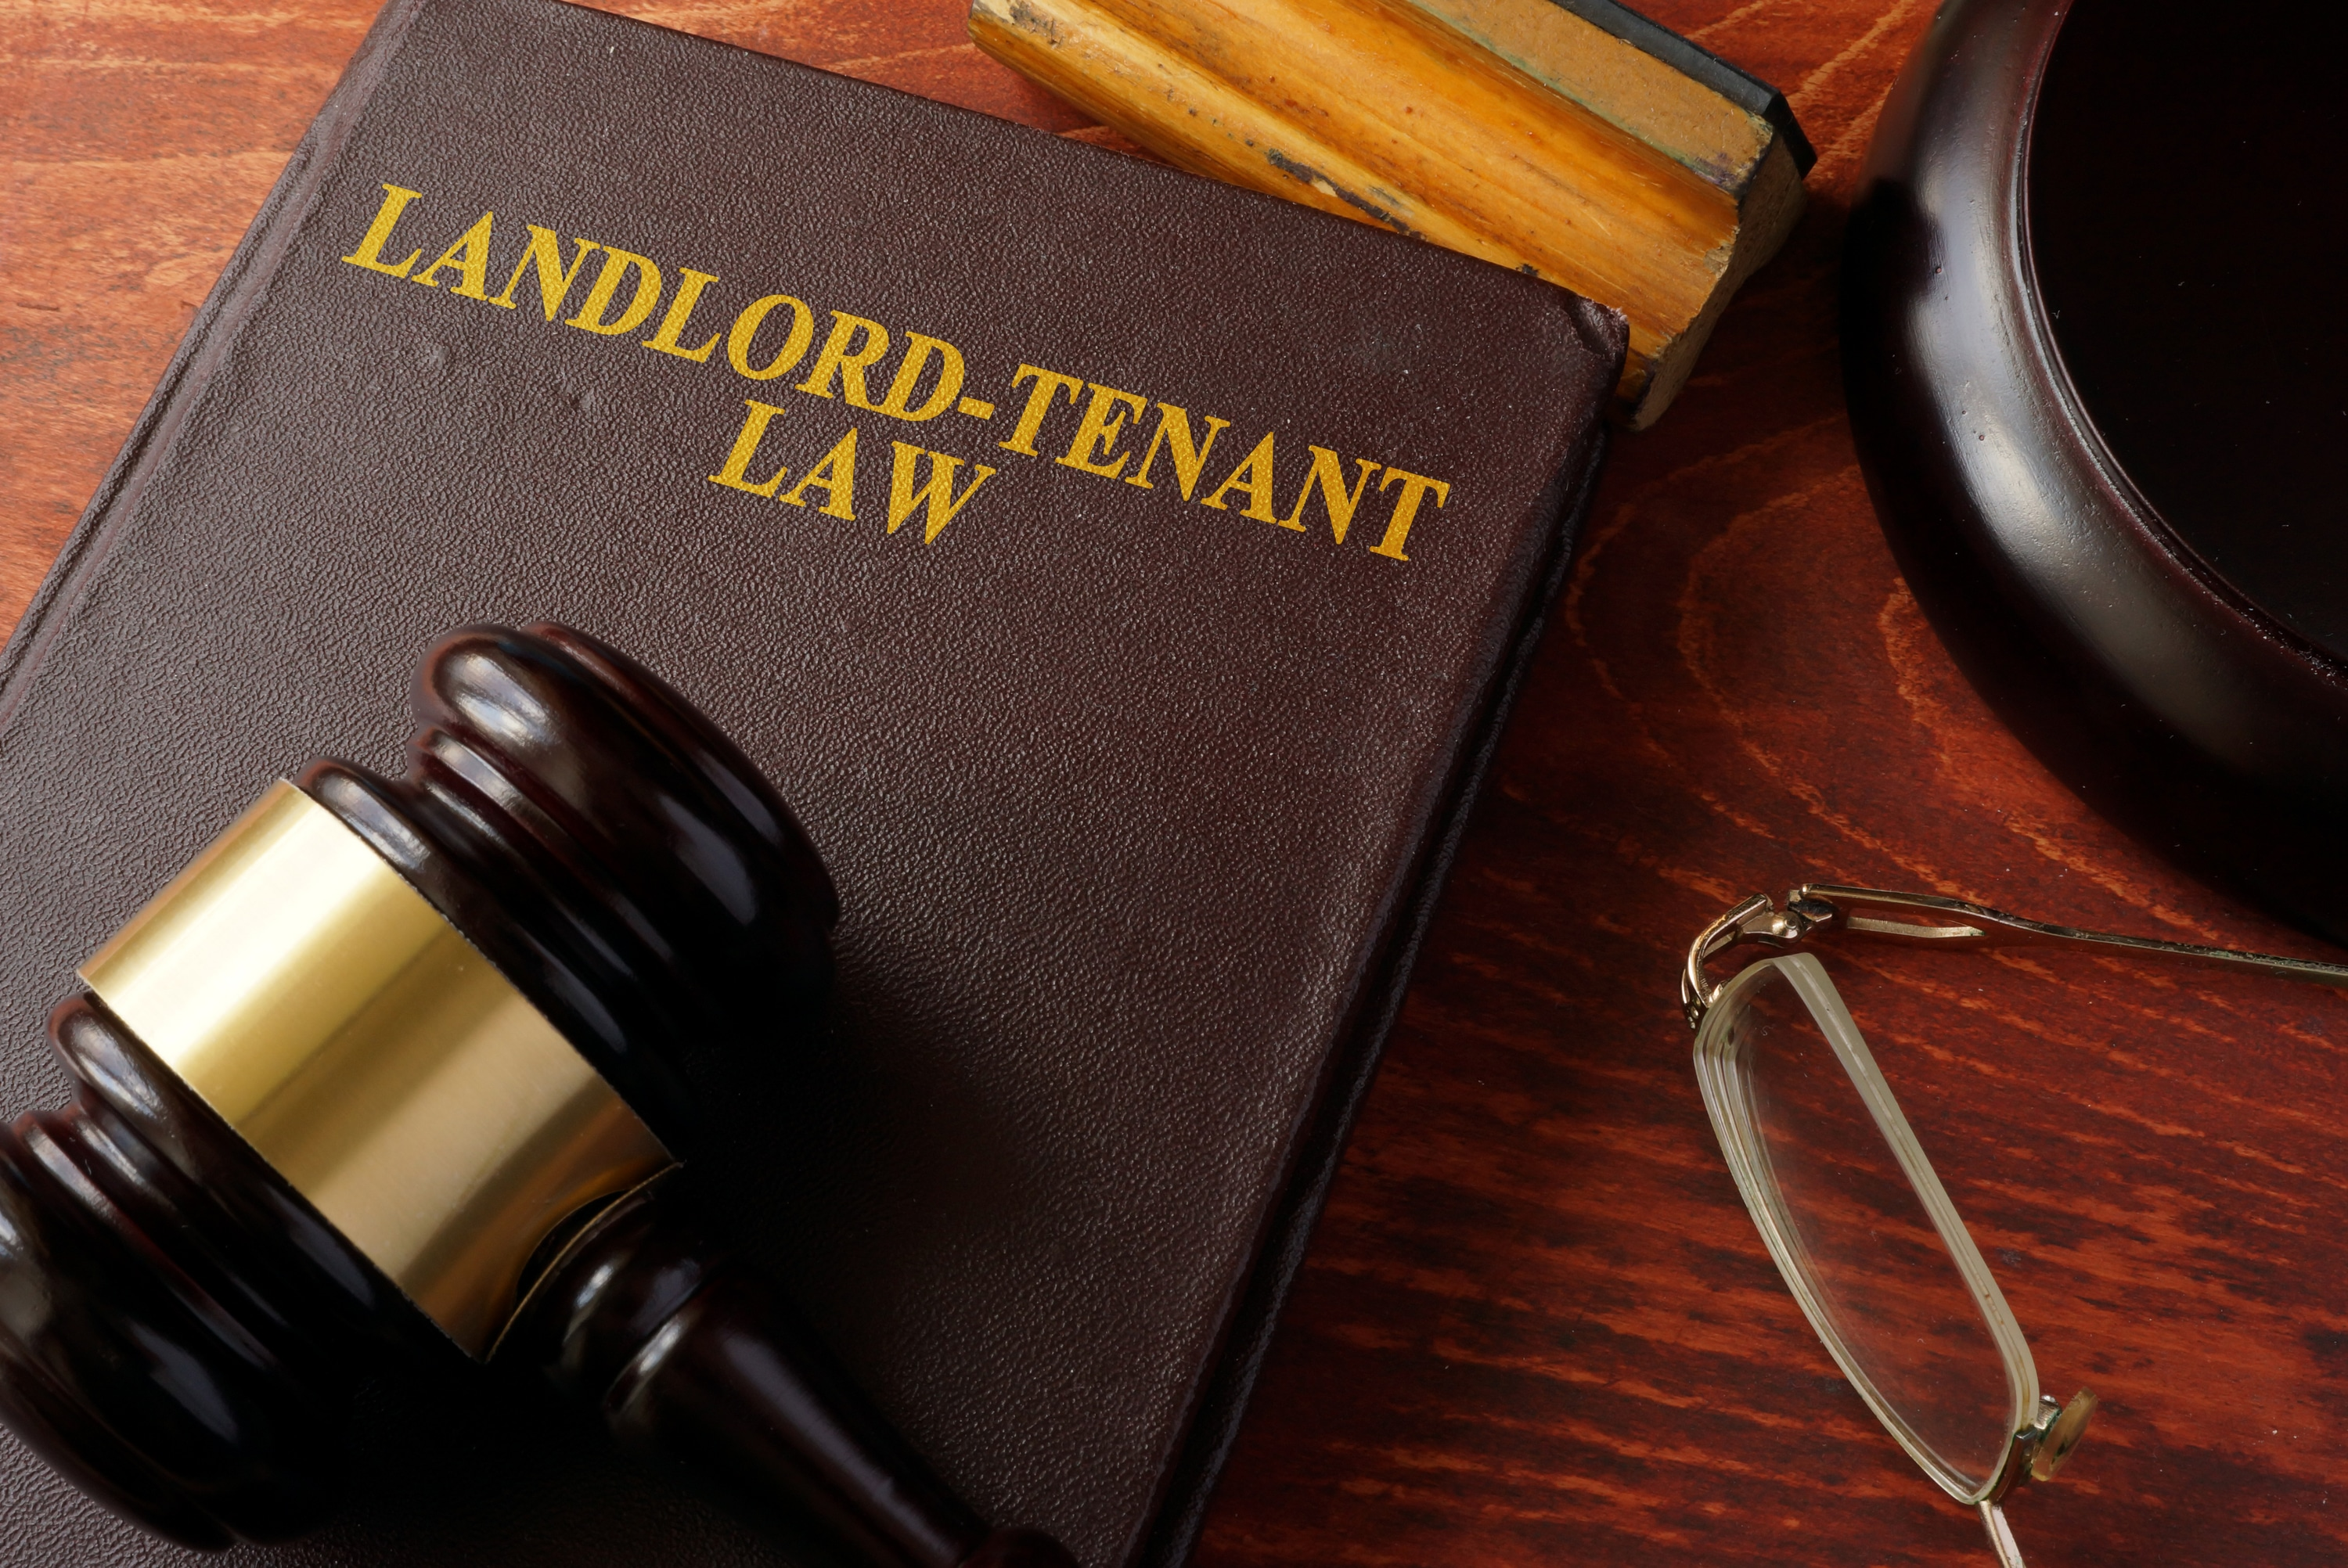 How to Become a Section 8 Housing Landlord - Requirements